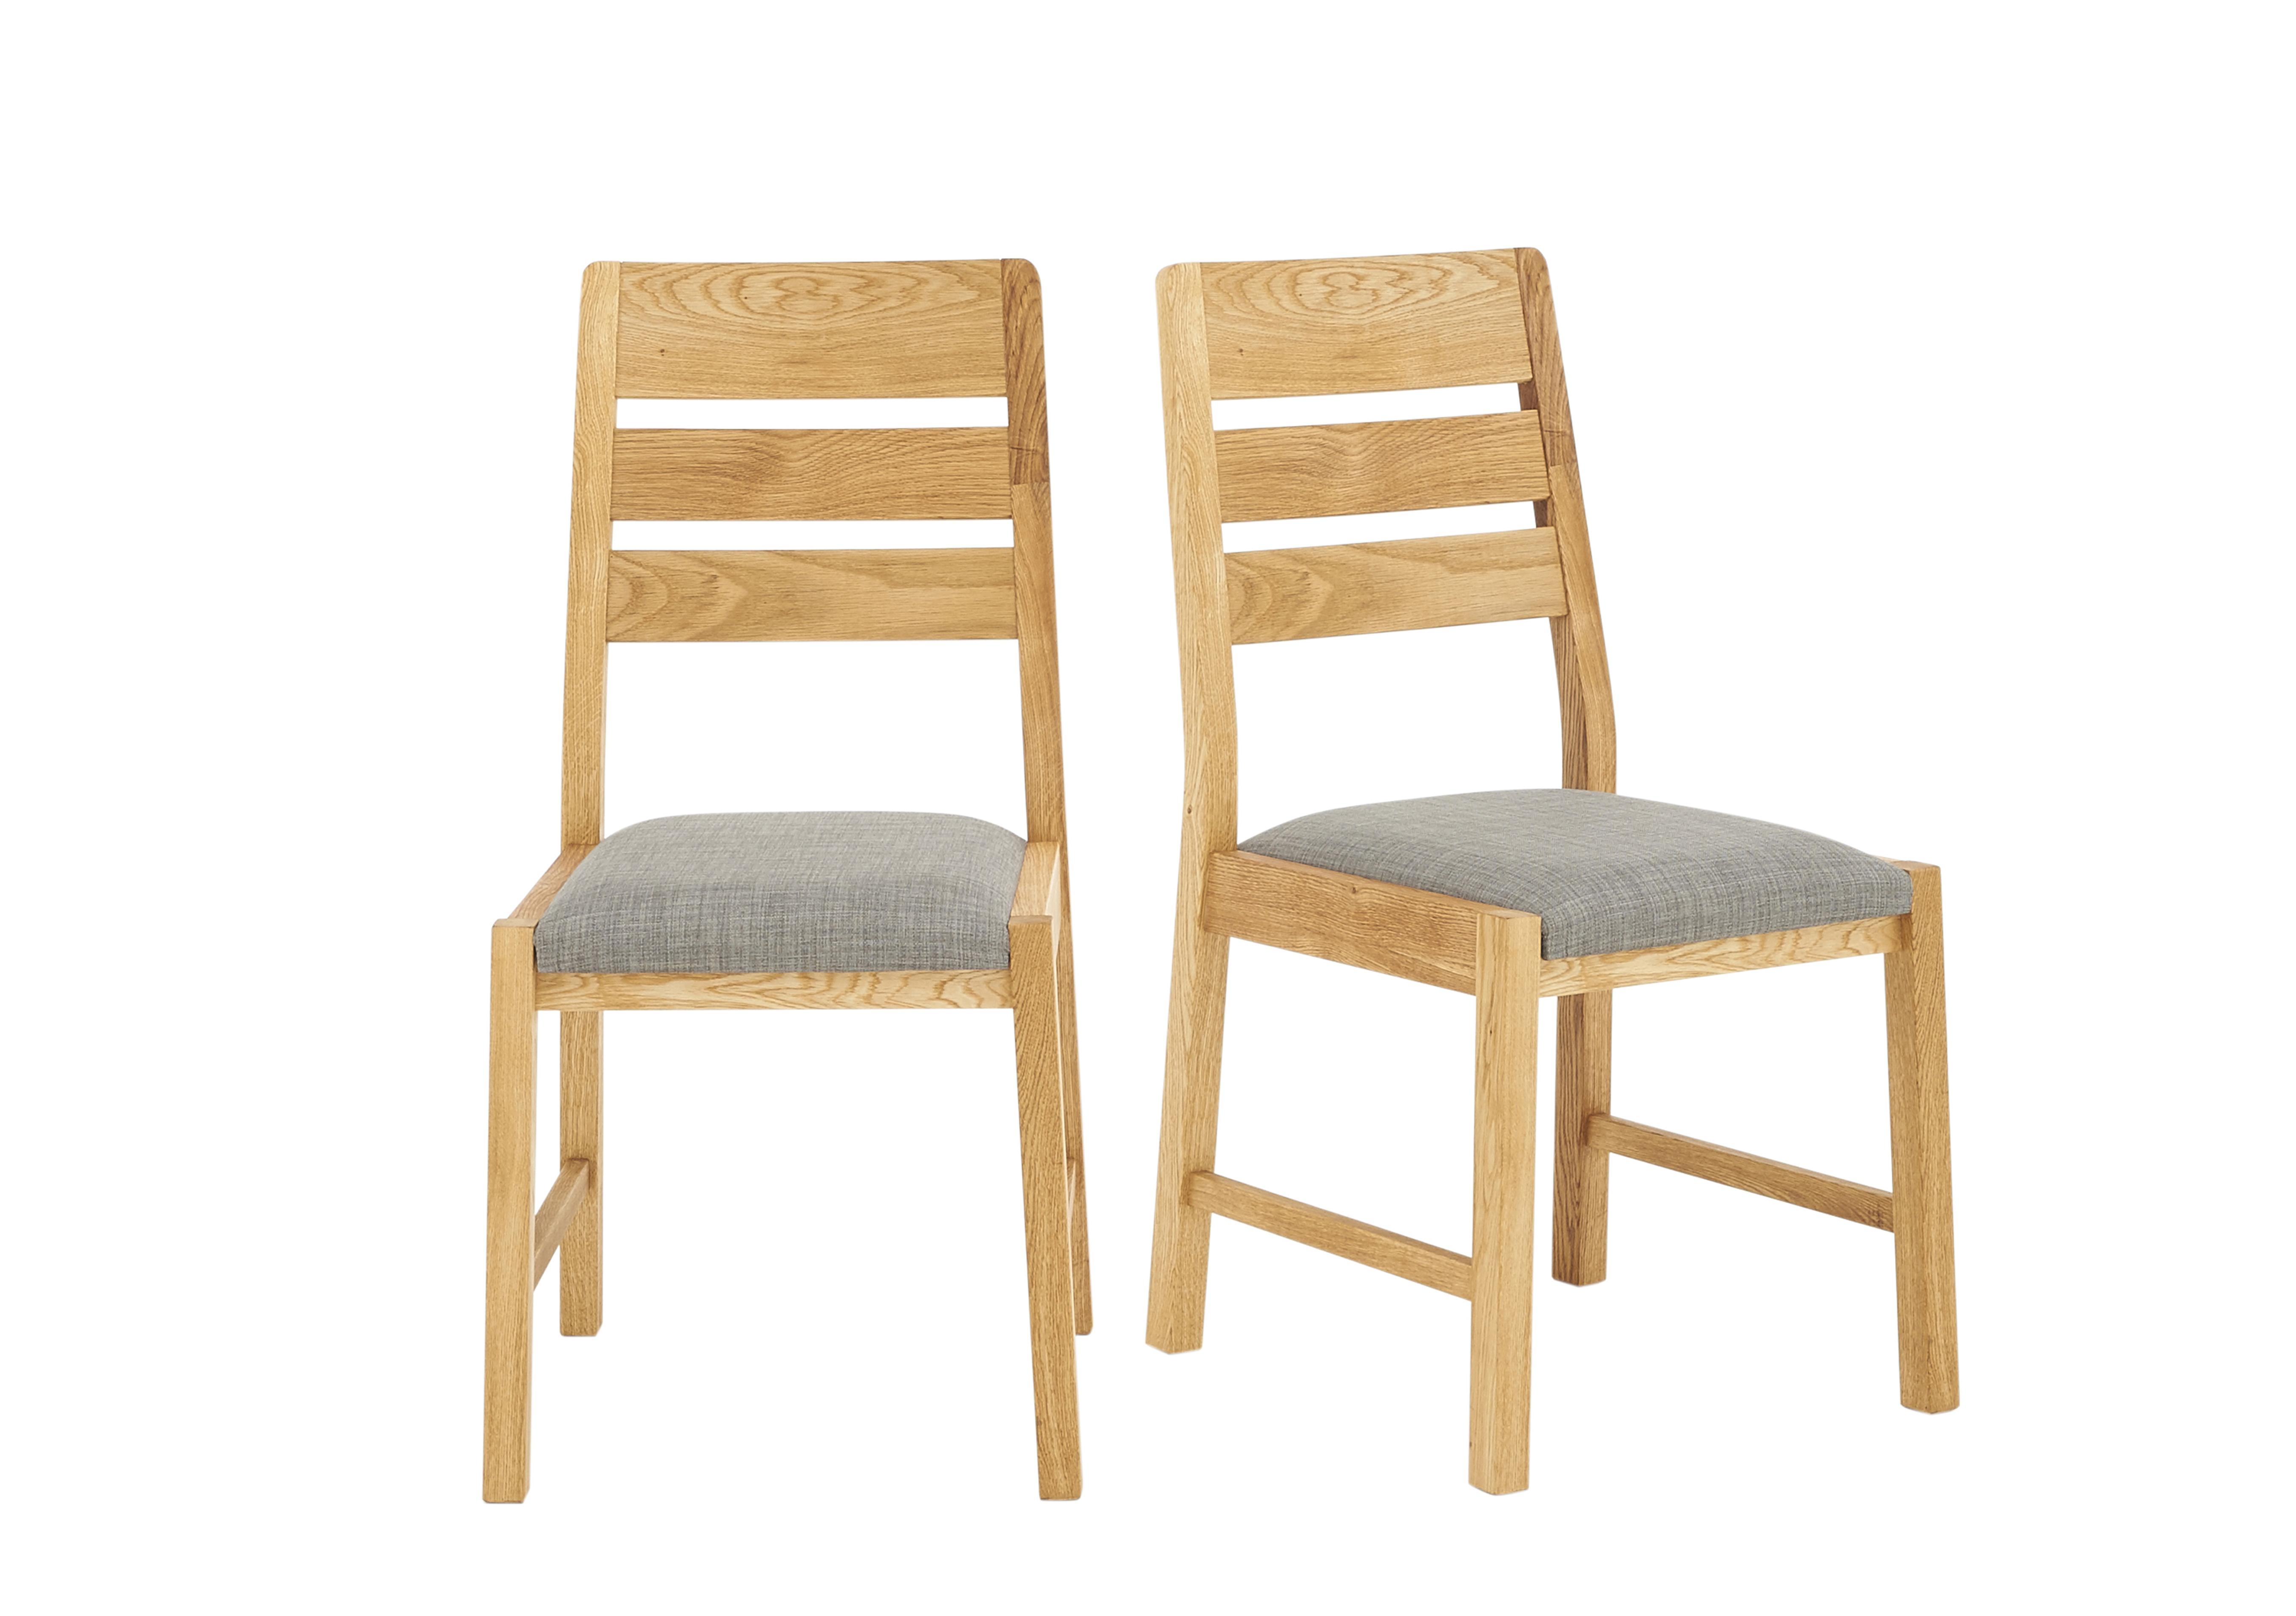 Old wooden chairs - Save With Wooden Chairs